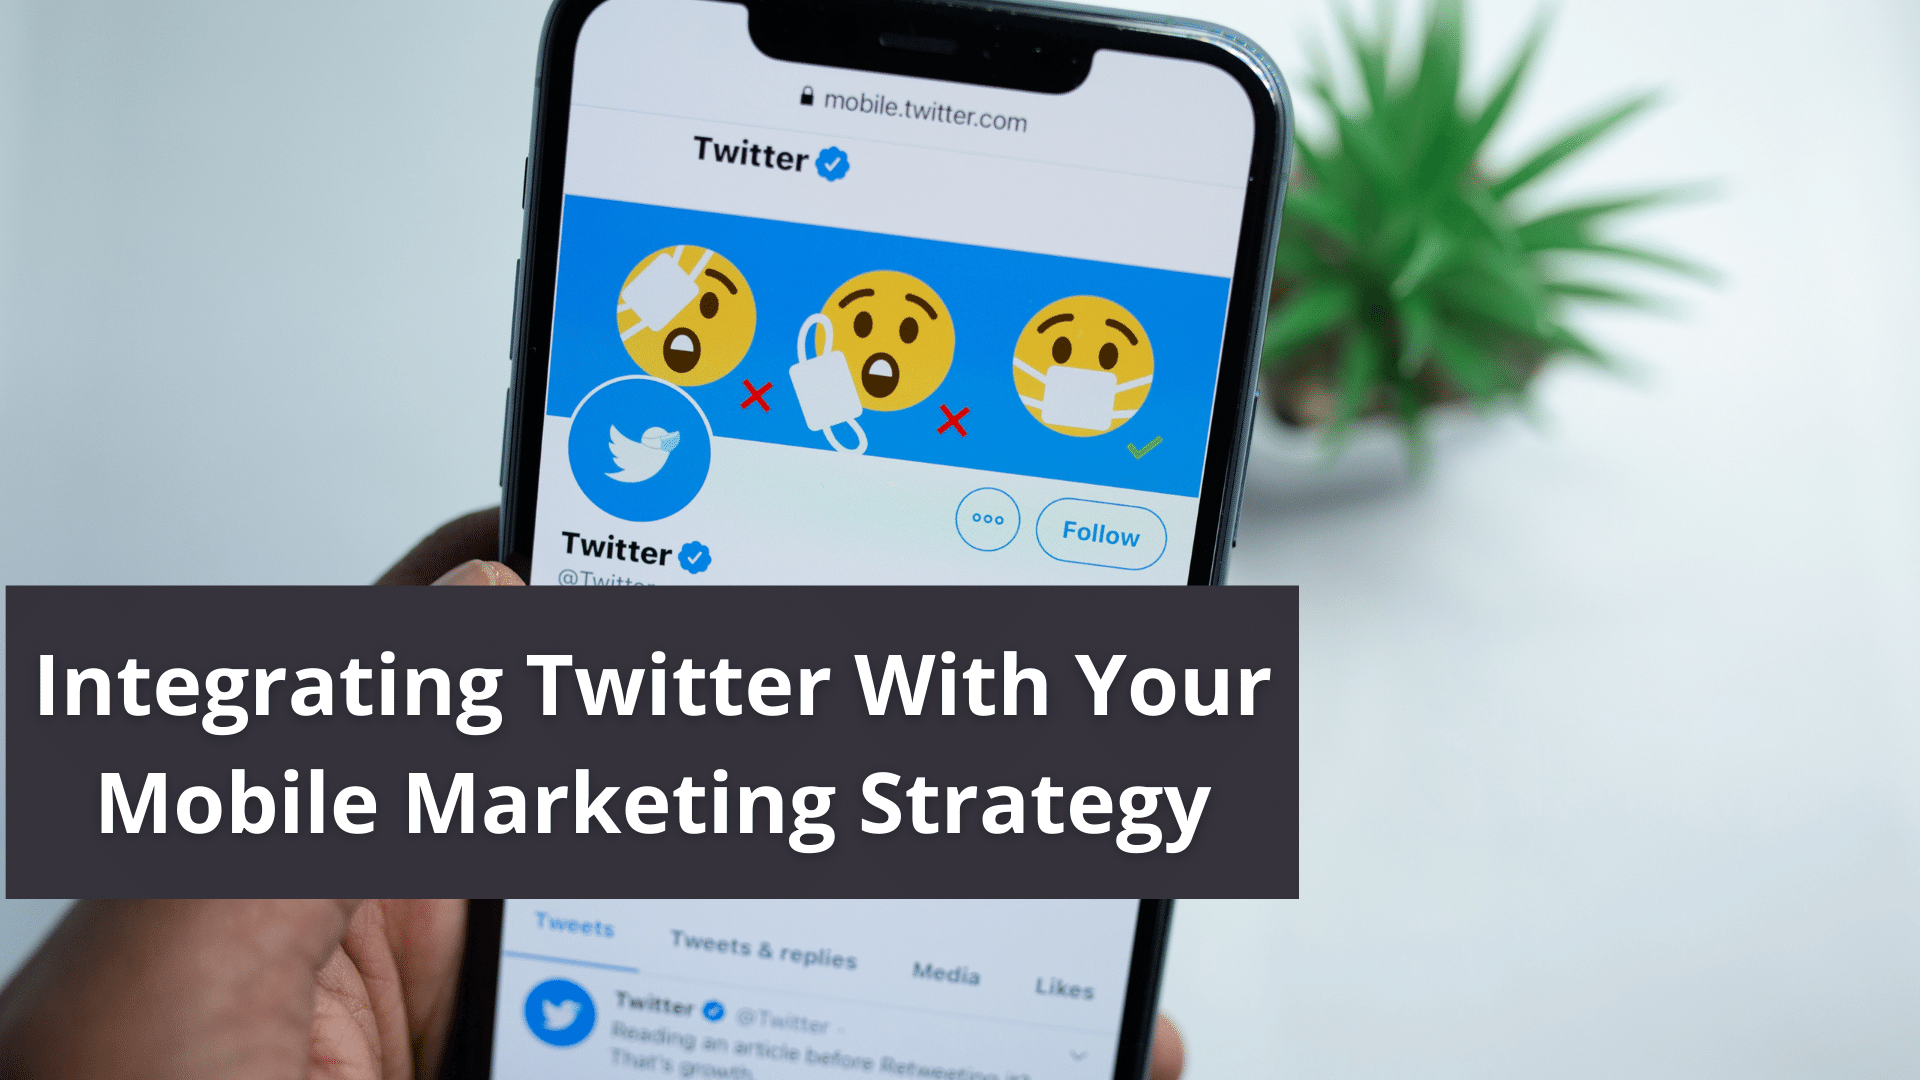 Integrating Twitter With Your Mobile Marketing Strategy 41